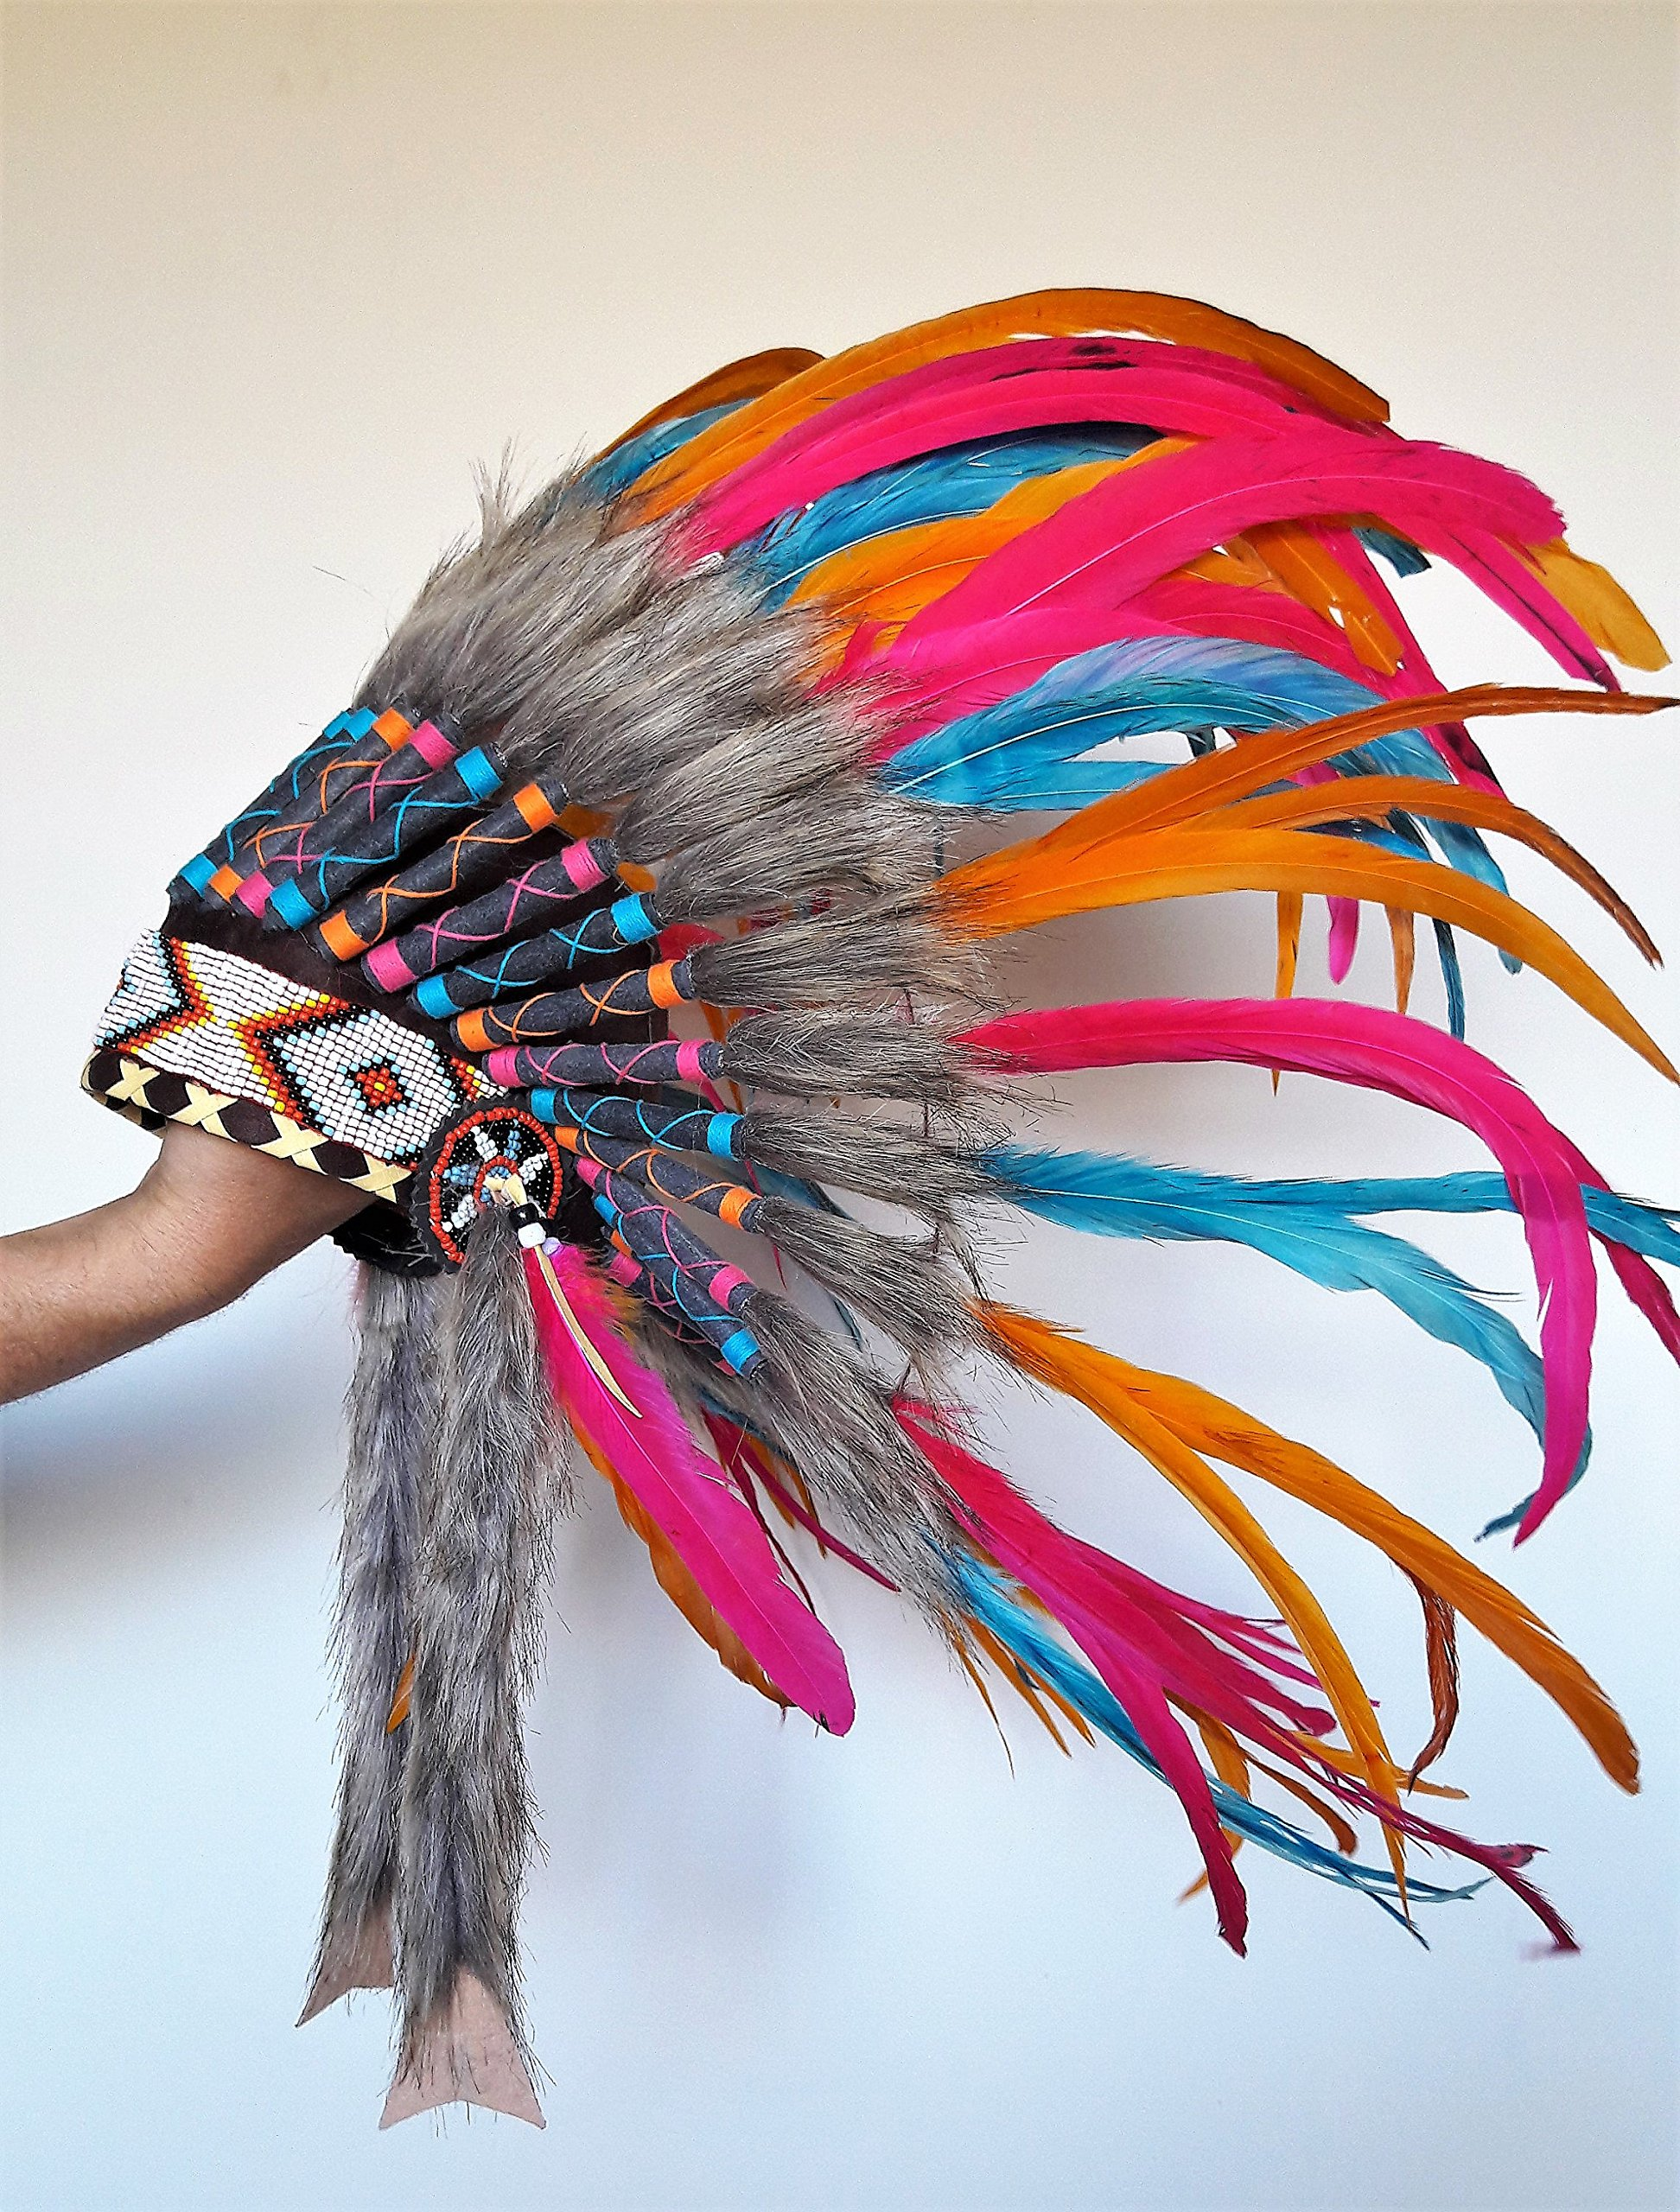 N25 - For 9 To 18 Month Toddler/Baby: Pink, Orange and Turquoise Native American Style Indian Inspired Headdress For The Little Ones ! by KARMABCN (Image #2)